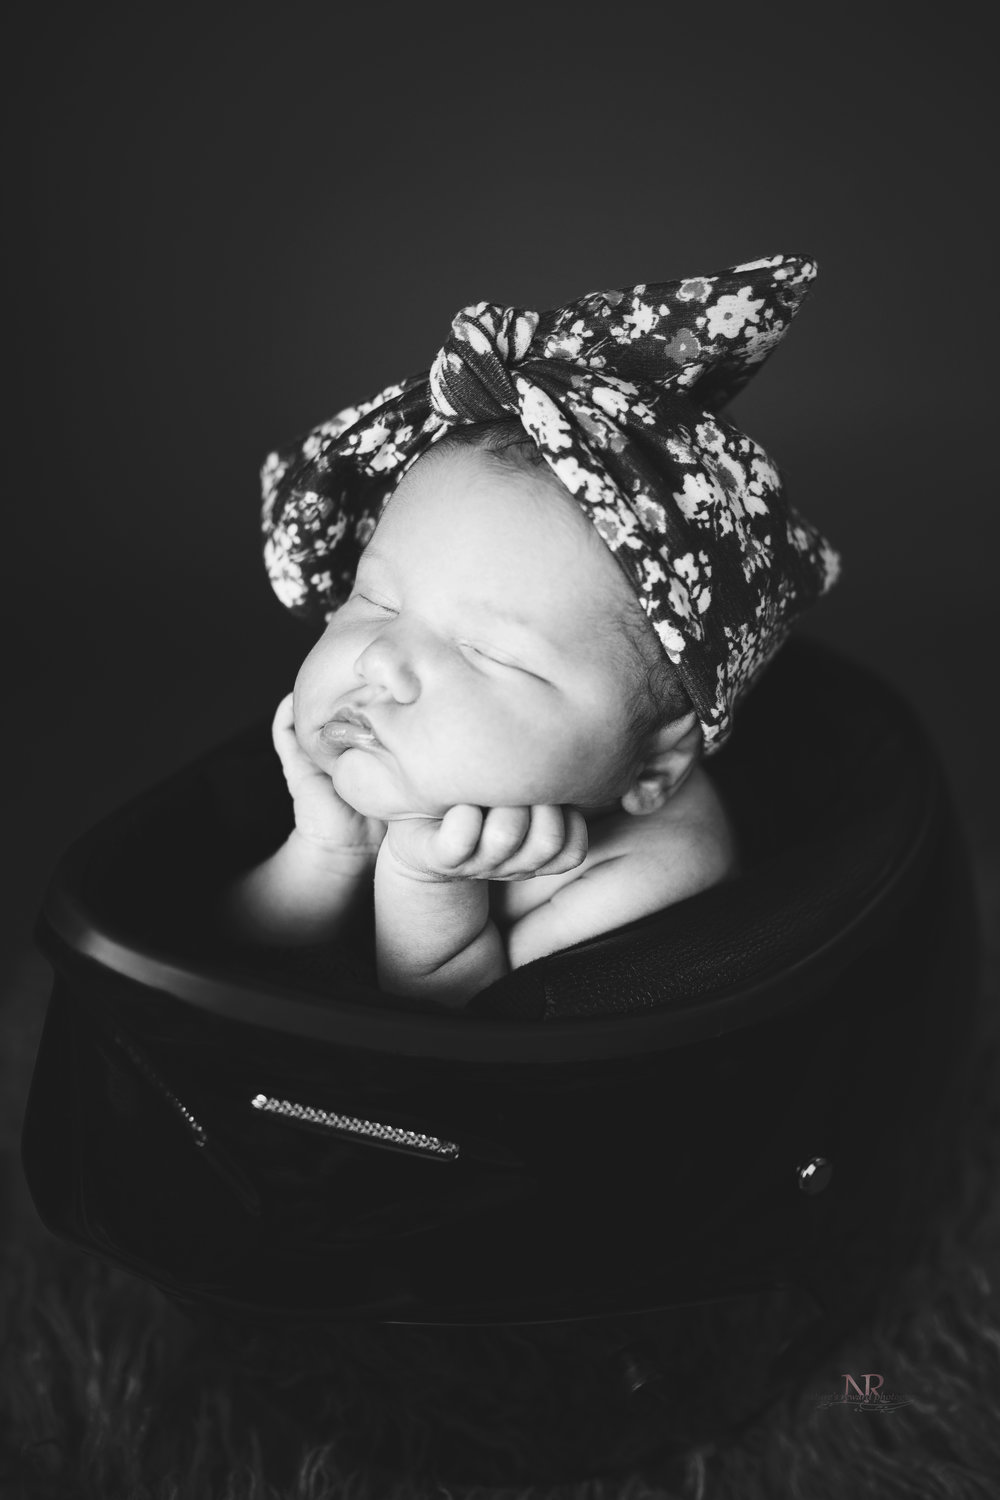 Newborn Profile portrait in black and white of baby girl in her dad's motorcycle helmet taken by Nature's Reward Photography